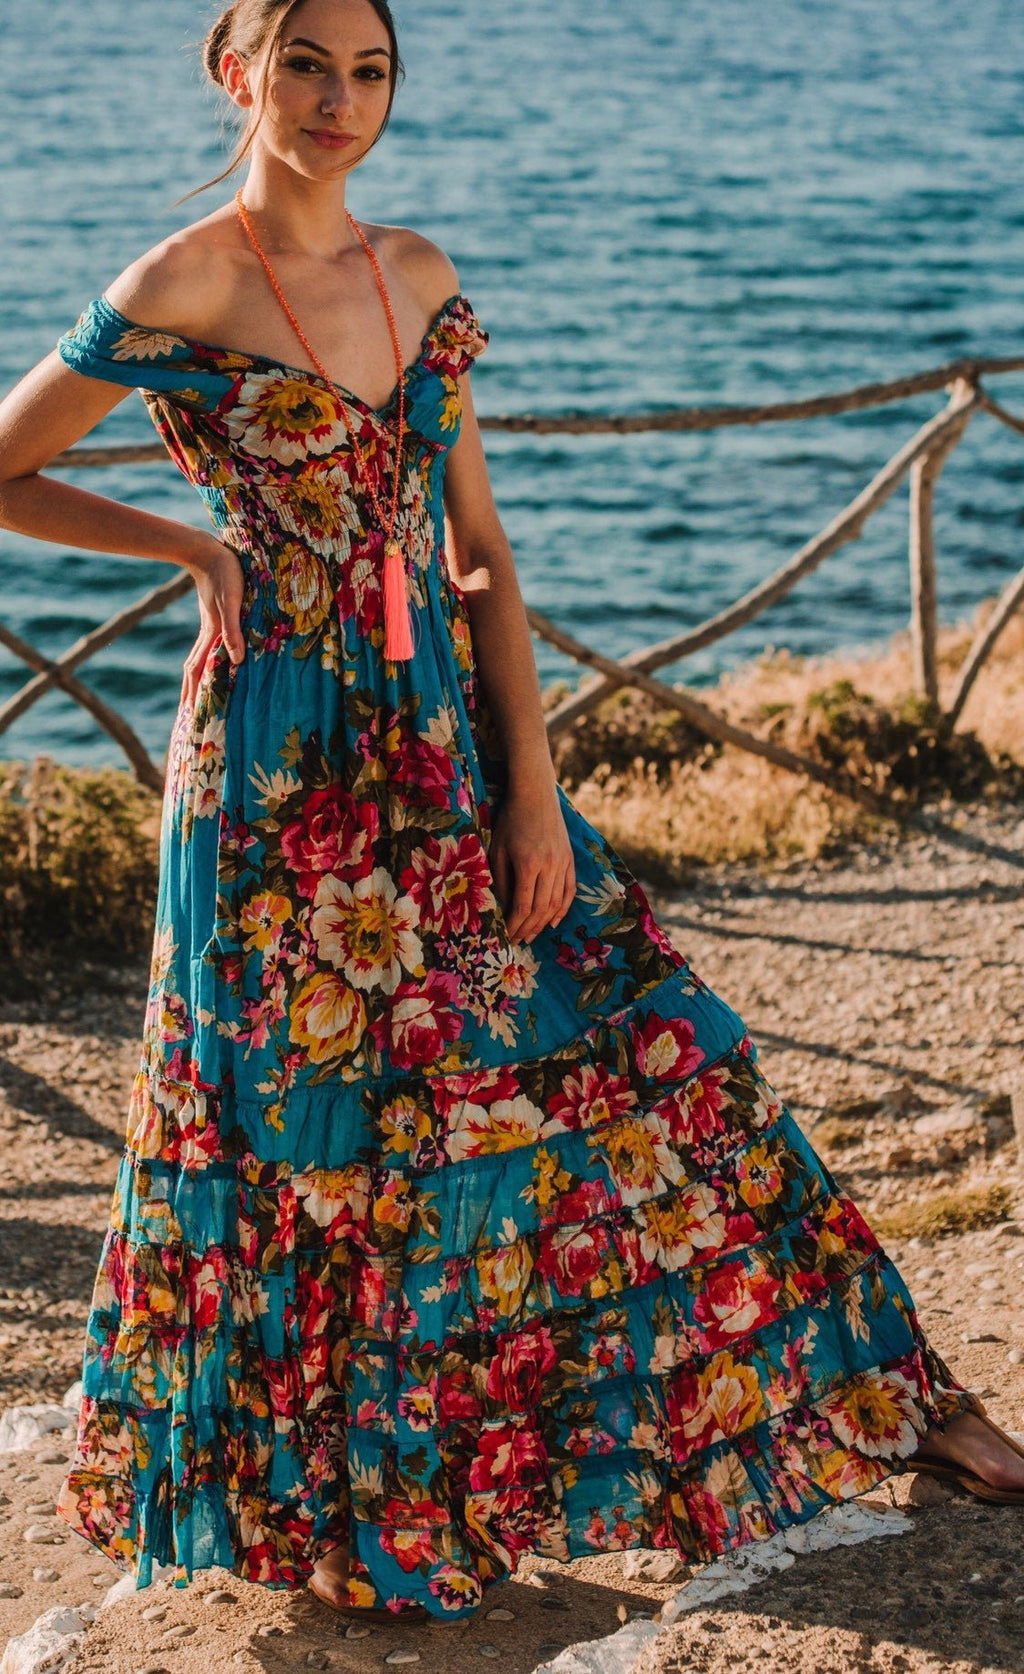 floral bohemian resort wear resort dress cruise dress